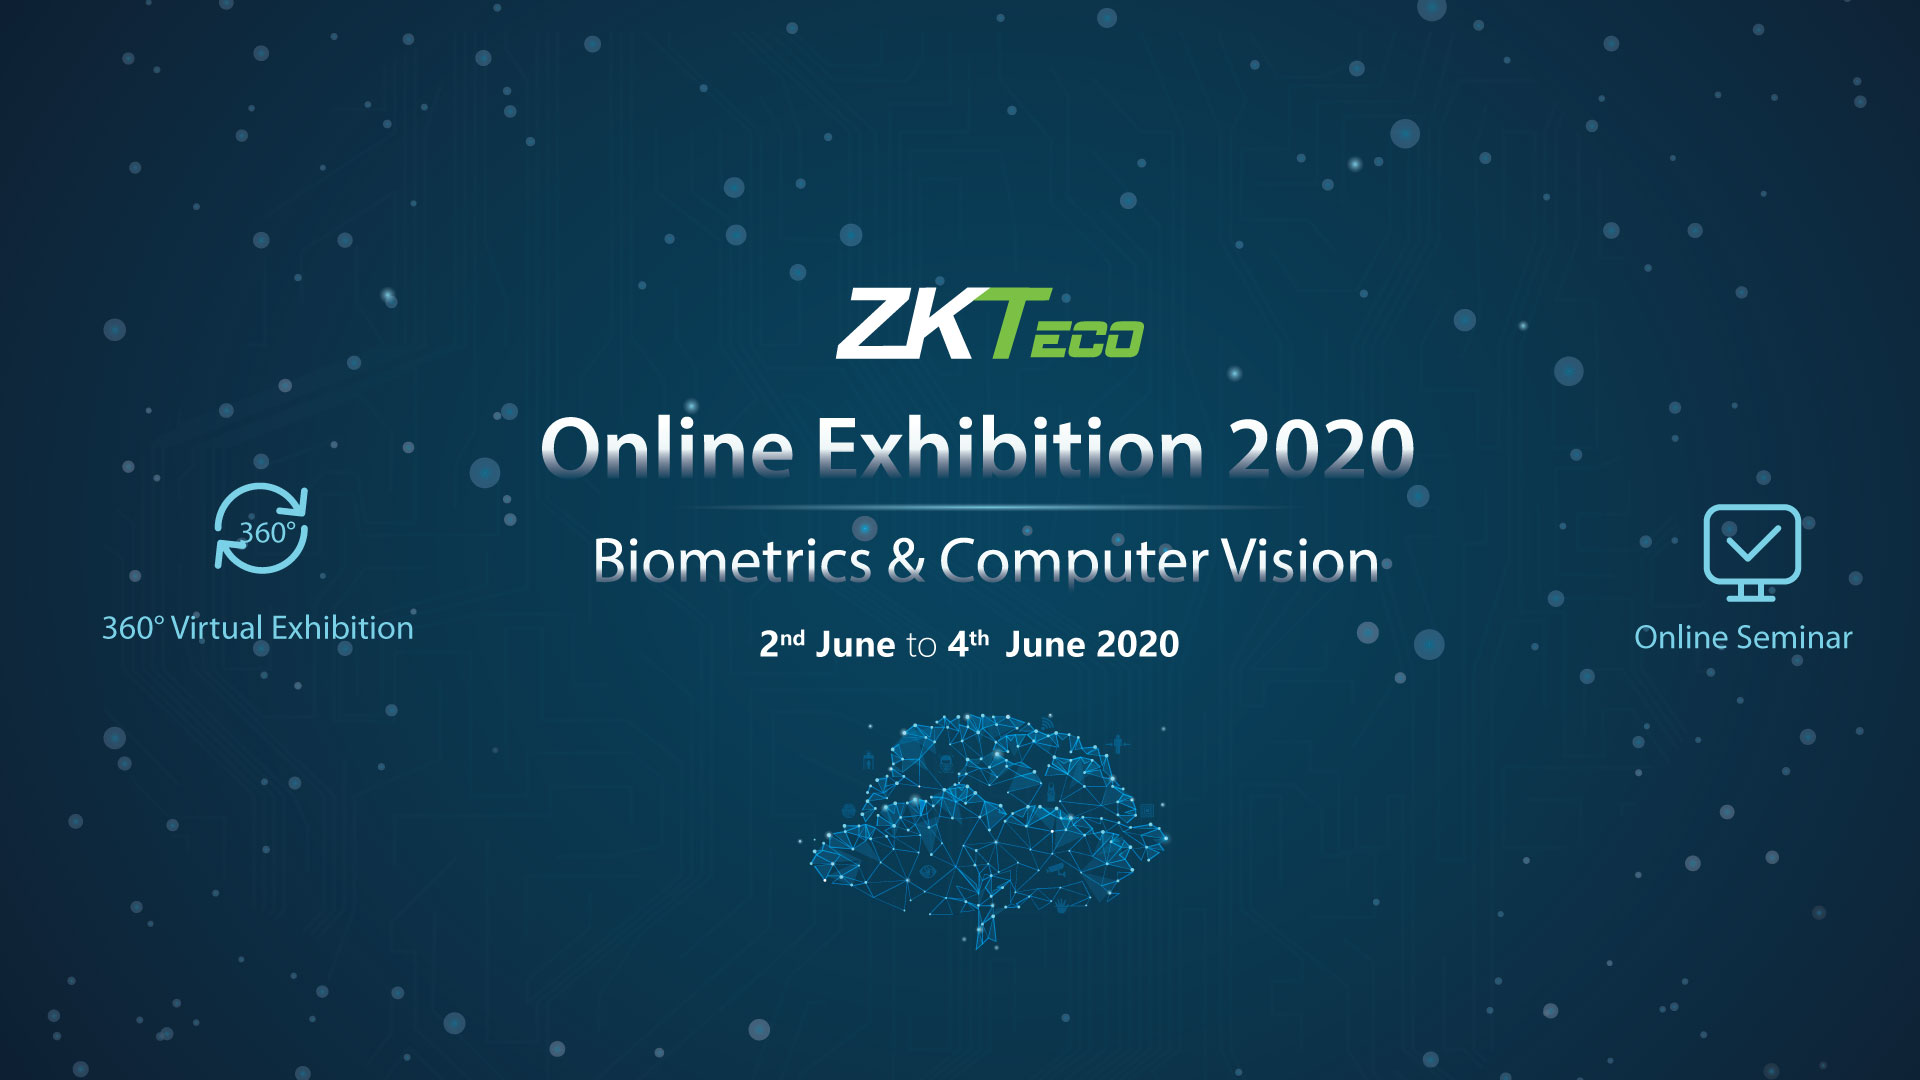 ZKTeco Exhibition